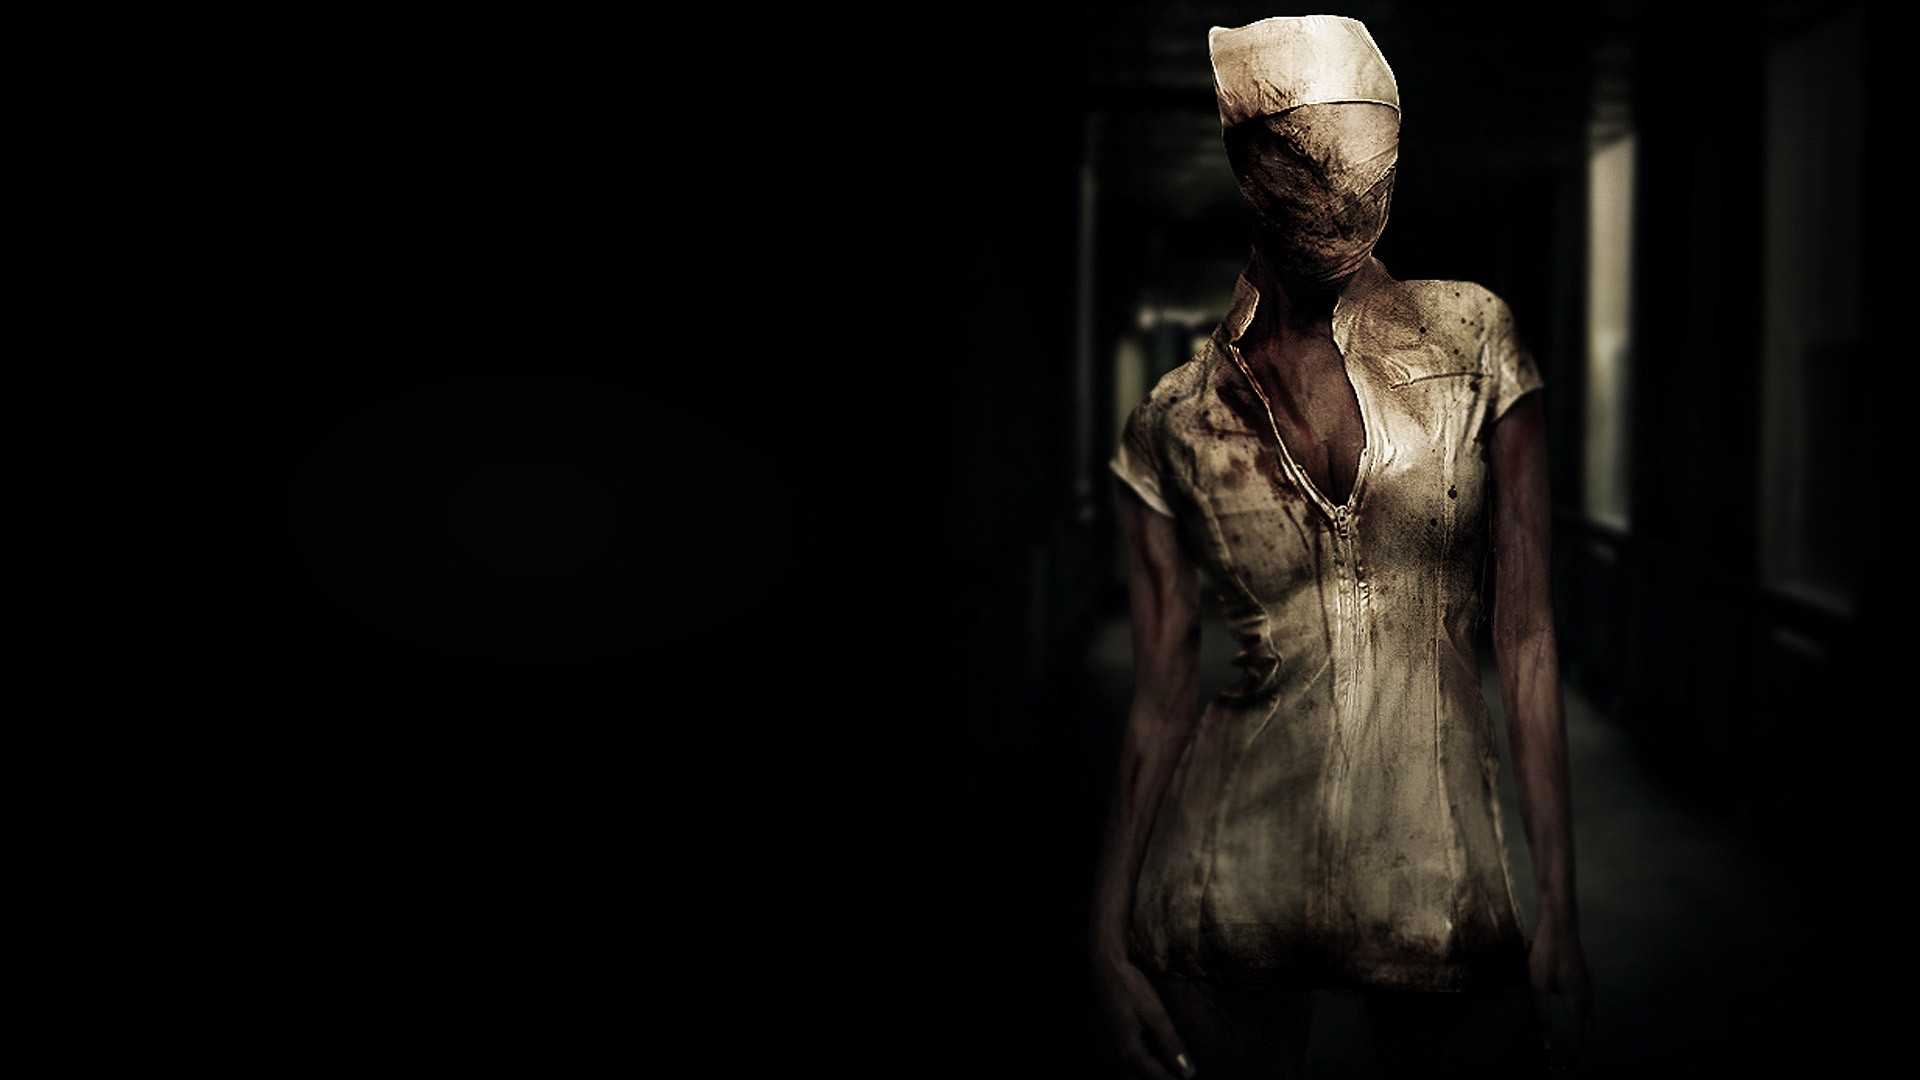 Zombies Wallpapers Wallpaper × Zombies Wallpapers | HD Wallpapers |  Pinterest | Zombie wallpaper, Wallpaper and Wallpaper backgrounds